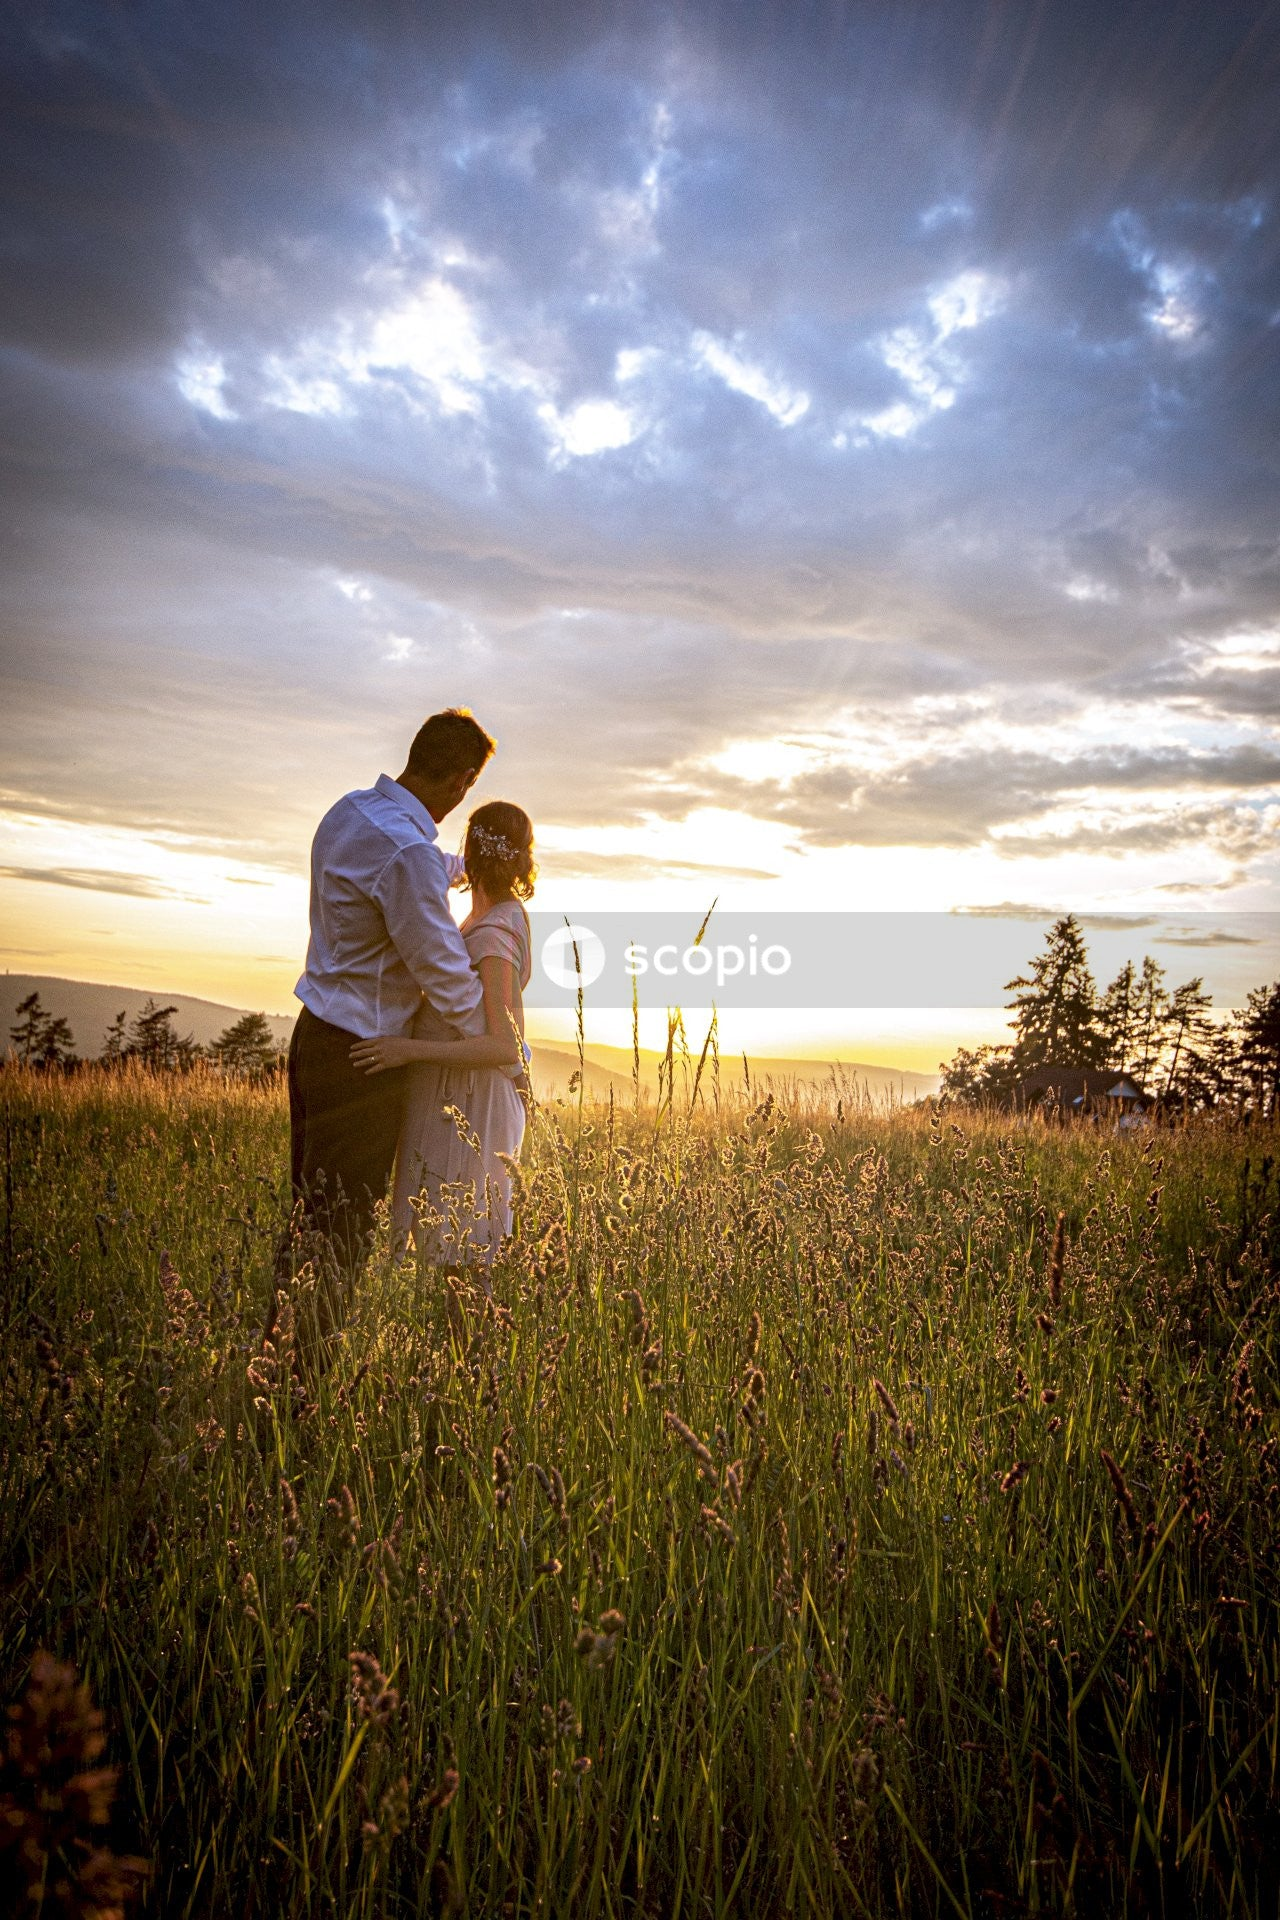 Man hugging woman under cloudy sky